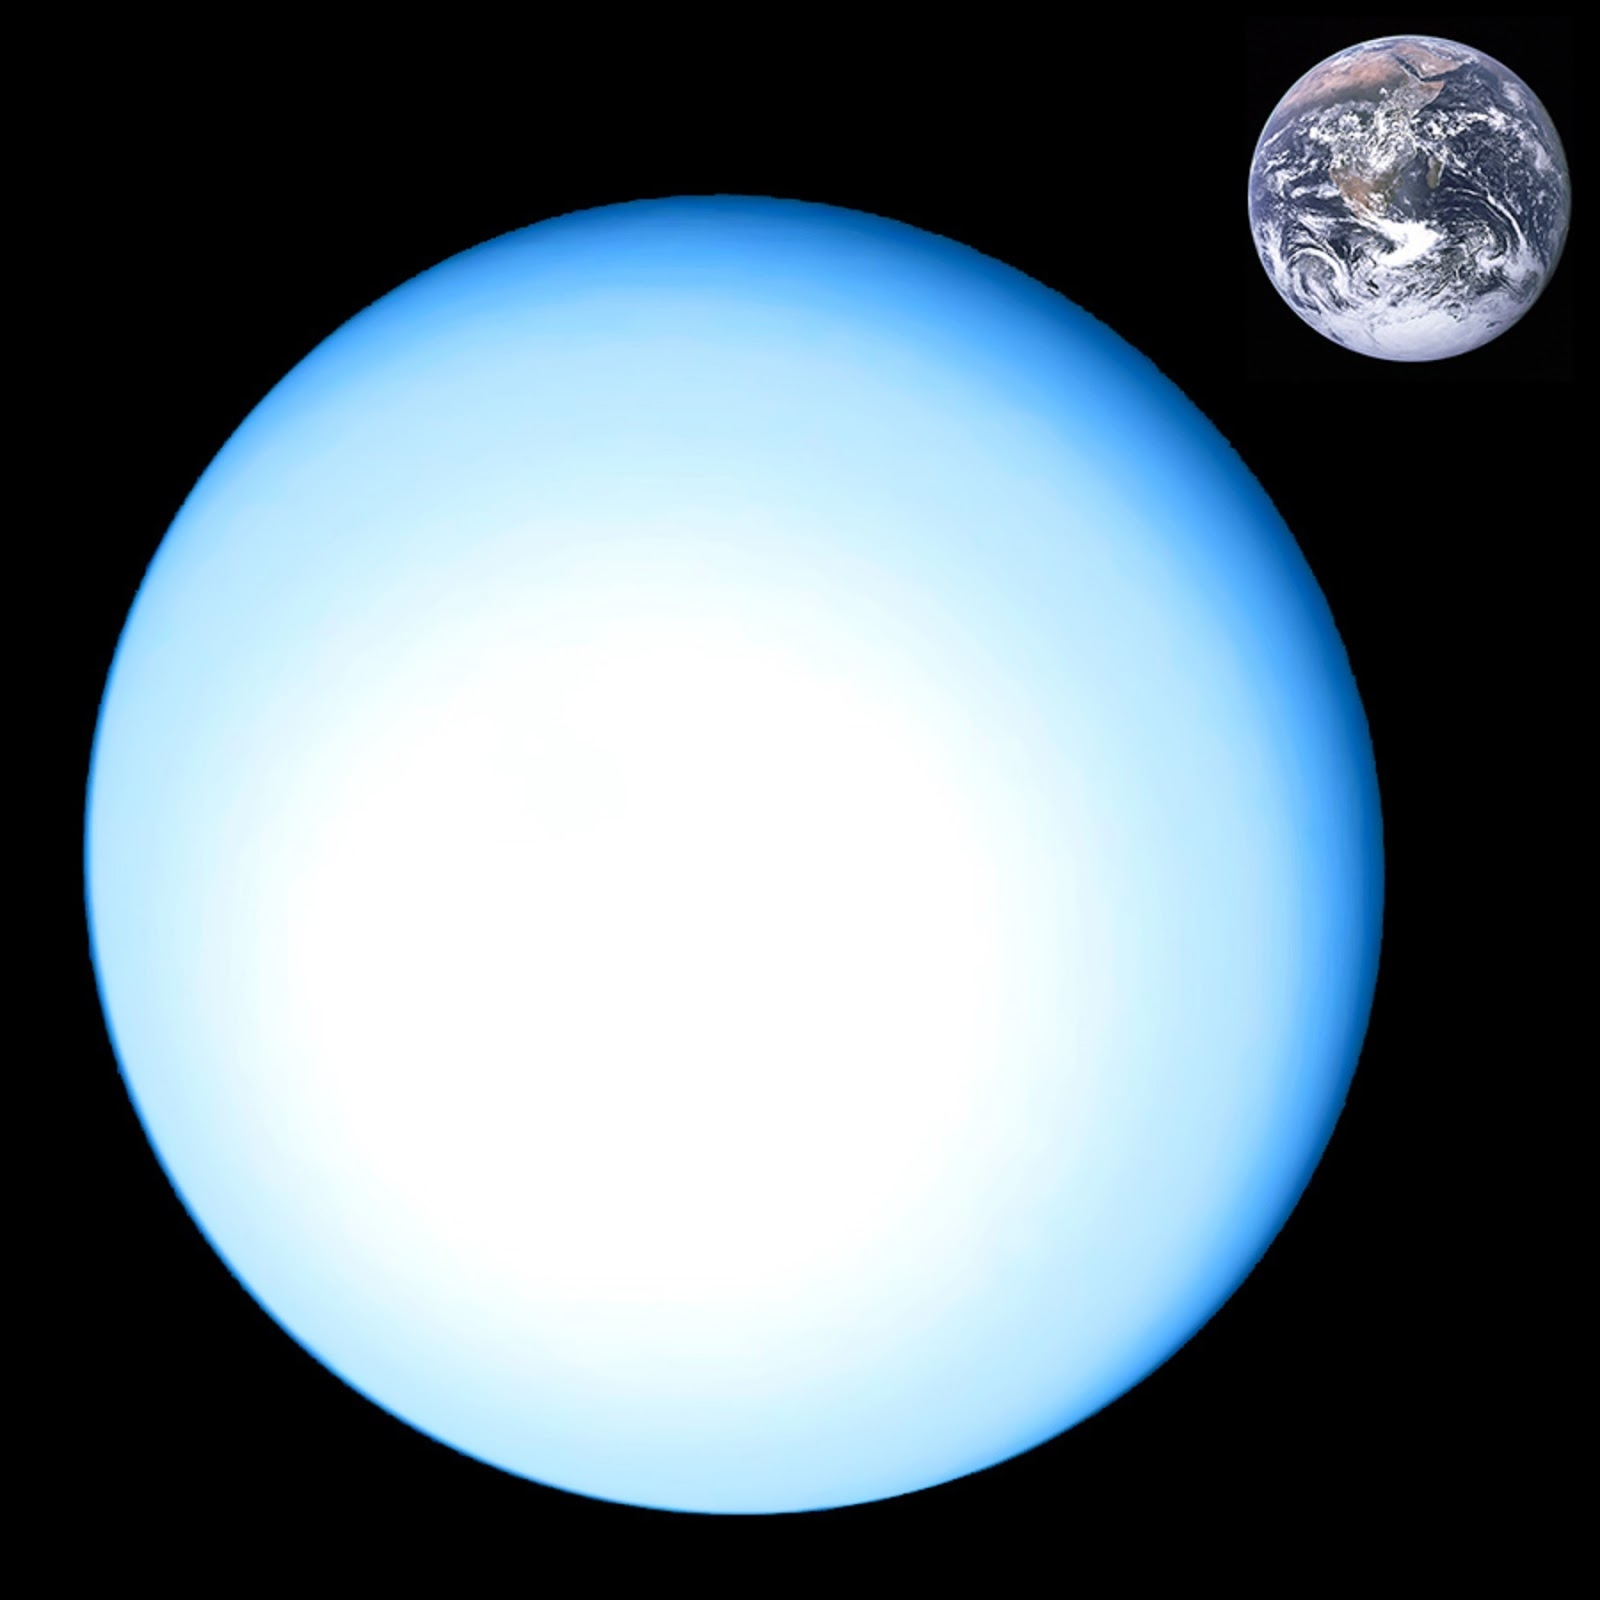 uranus compared to earth